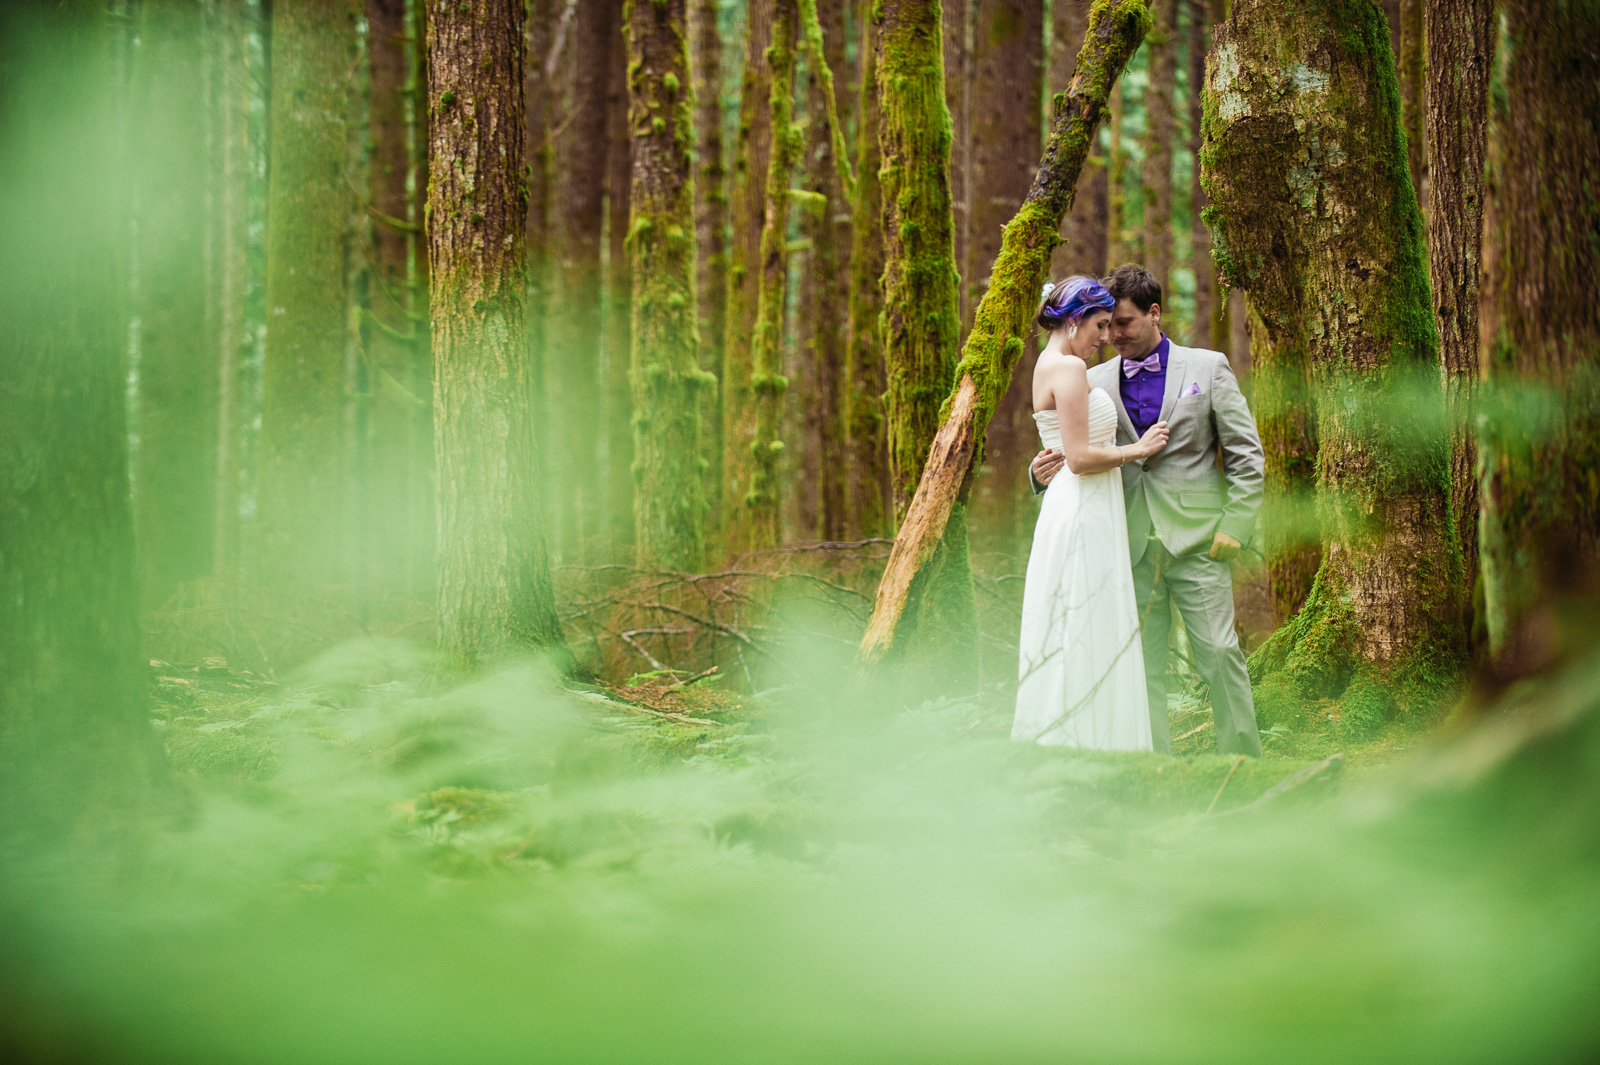 bc-wedding-photographers-kitimat-minette-bay-lodge-wedding-23.jpg